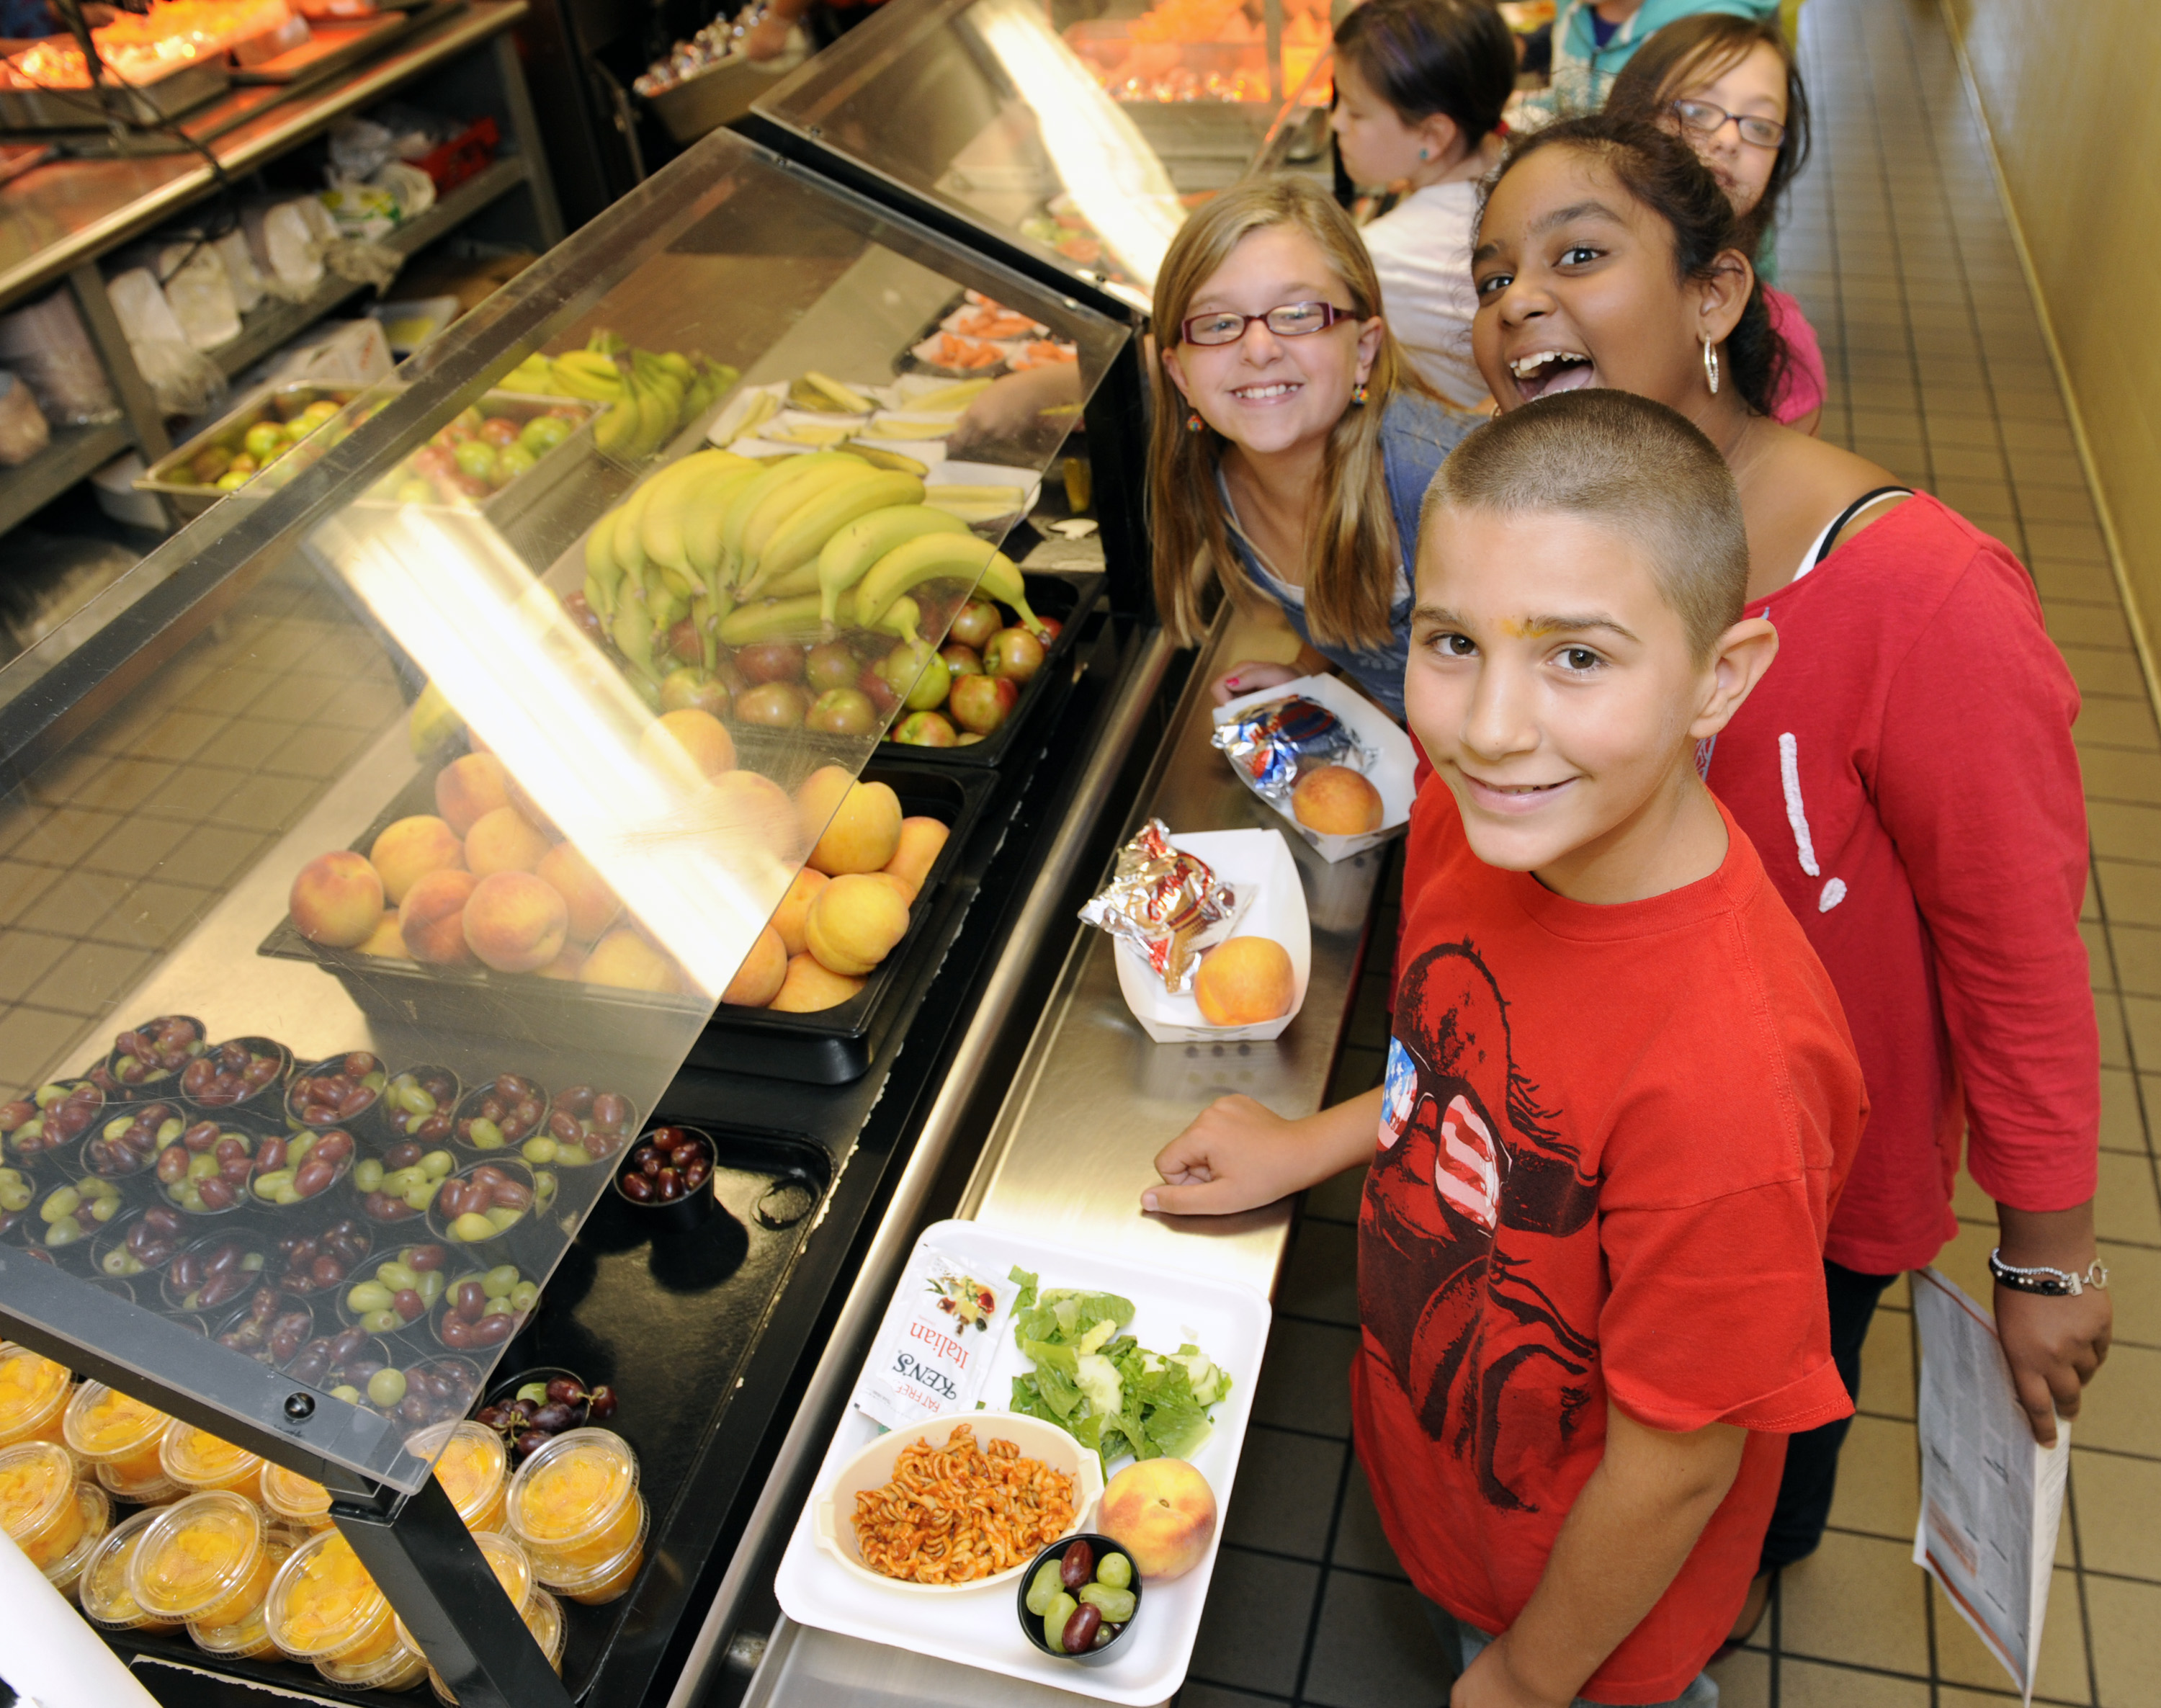 When school lets out for summer, hunger begins for many